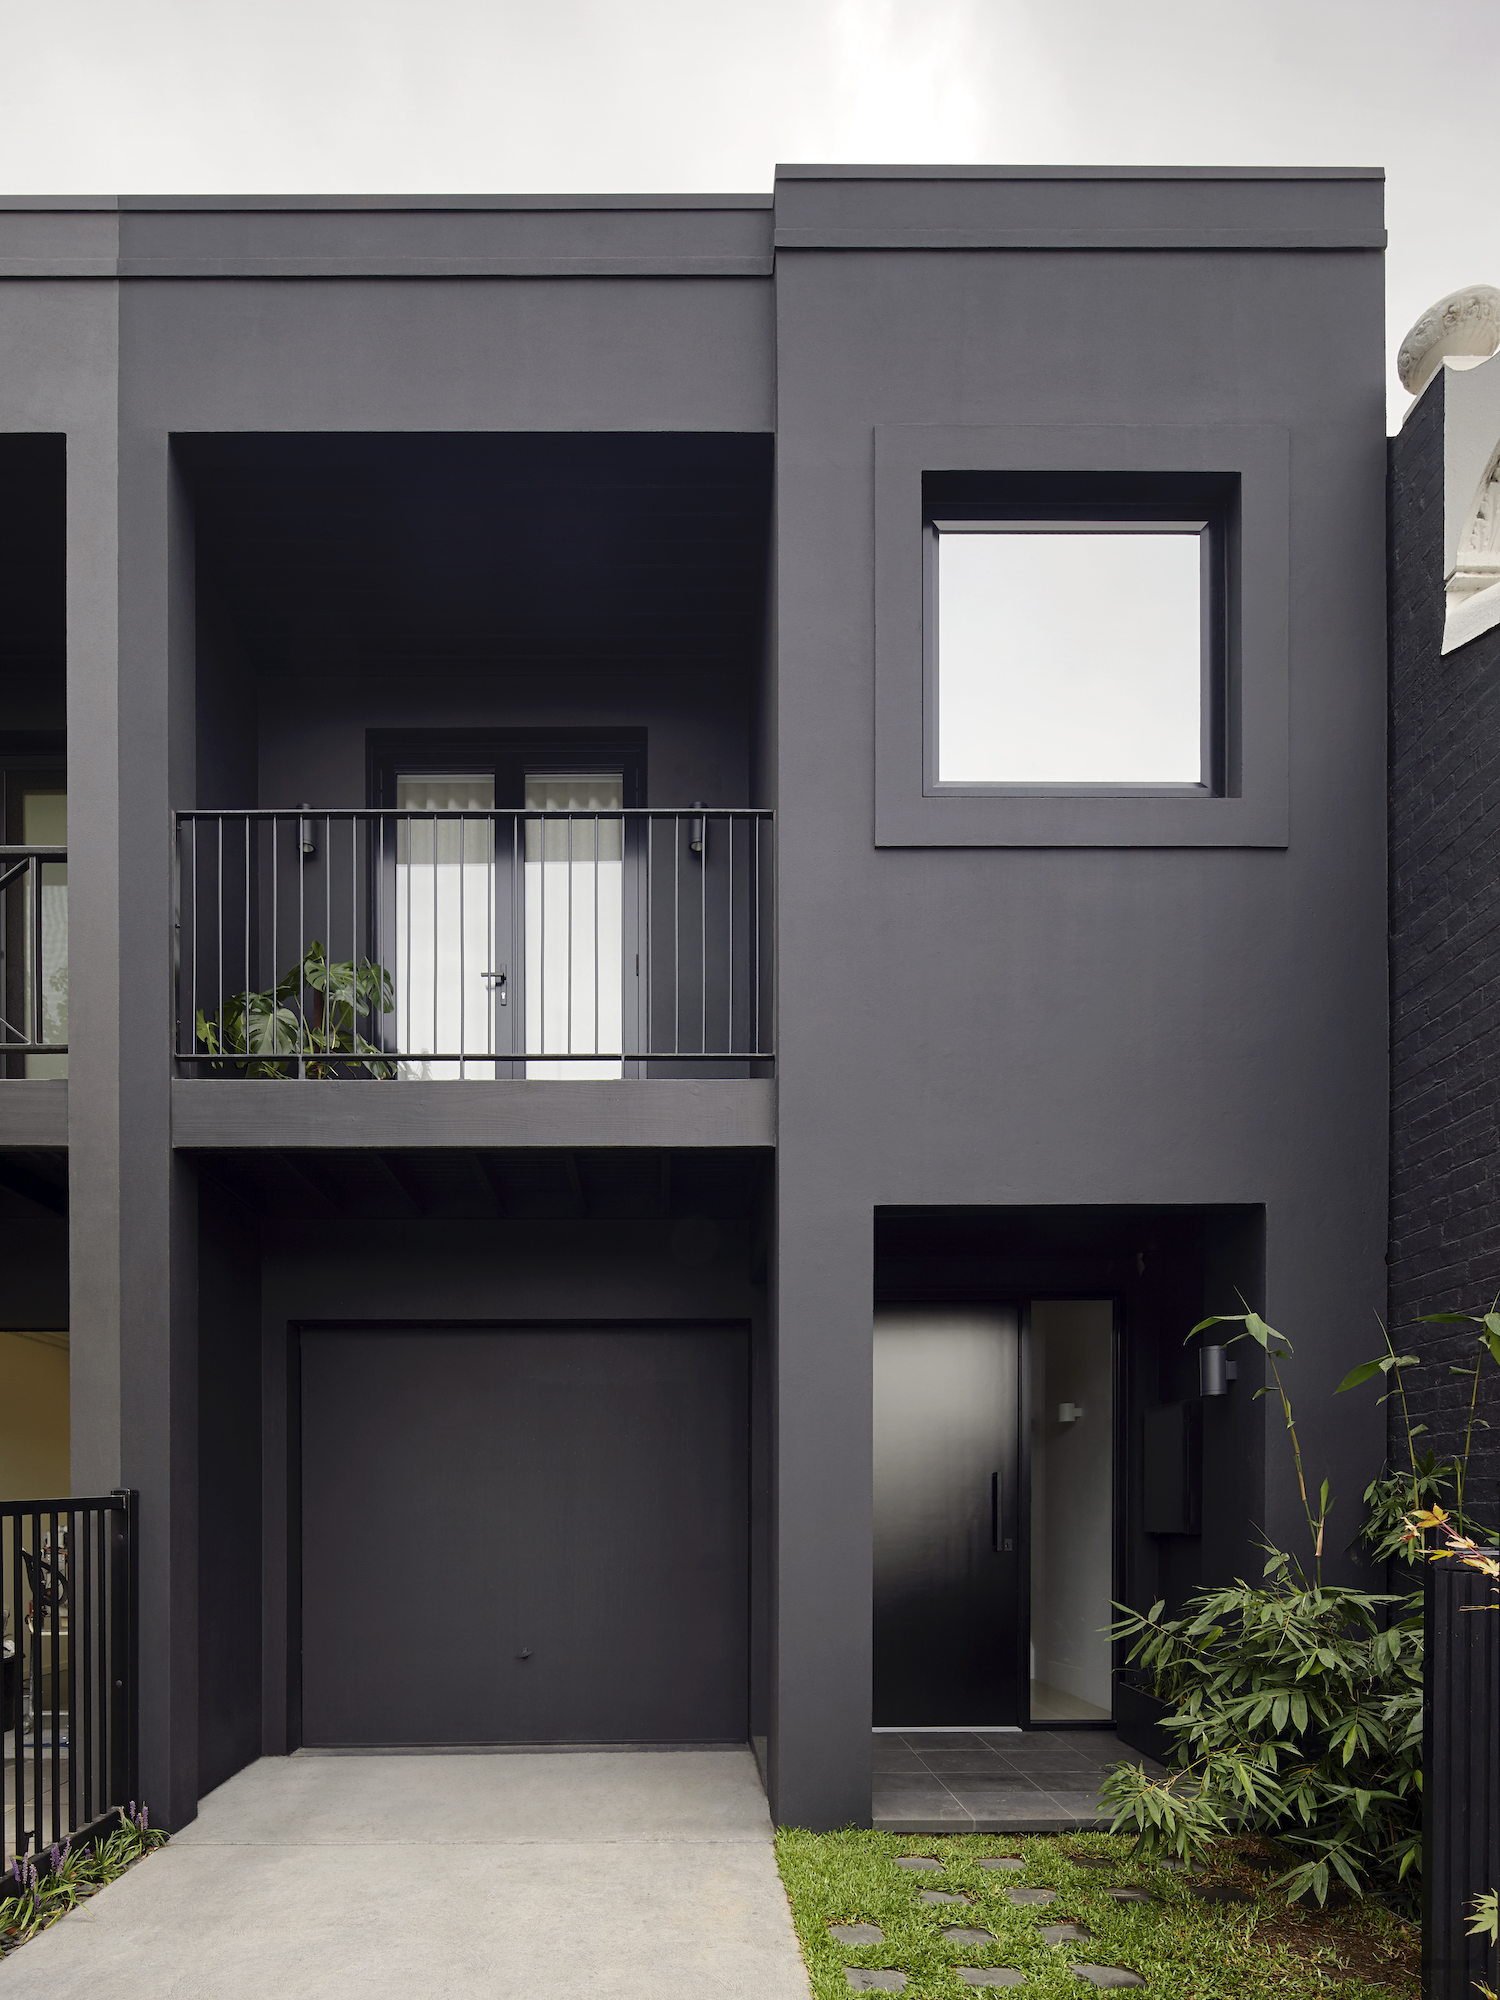 est living winter architecture south yarra townhouse 3